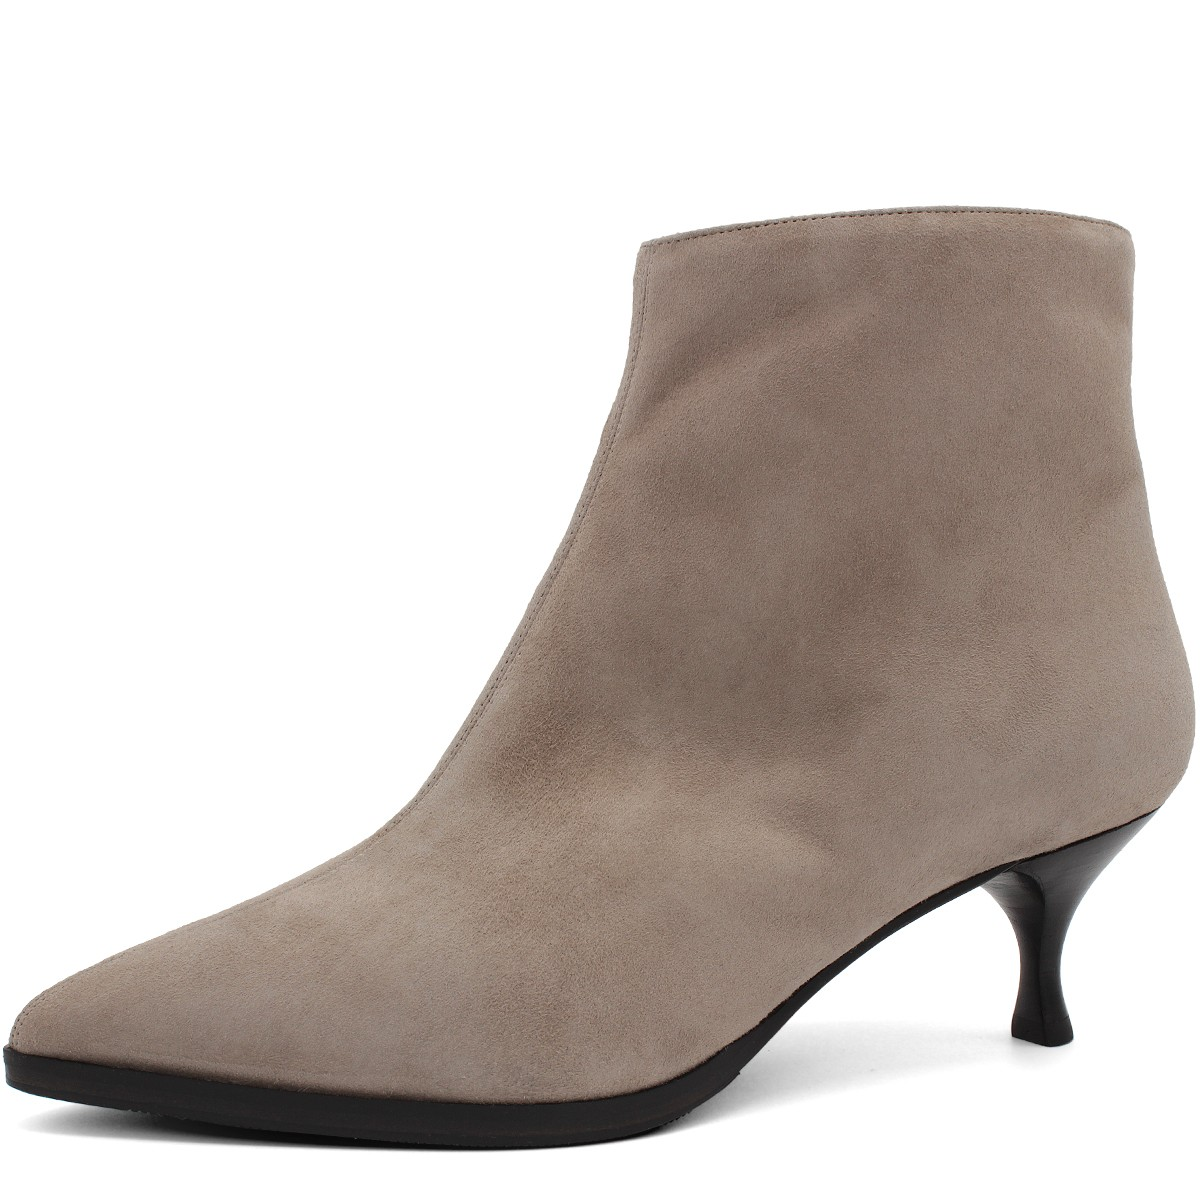 BEIGE SUEDE STYLISH WOOL FUR LINED ANKLE BOOTS